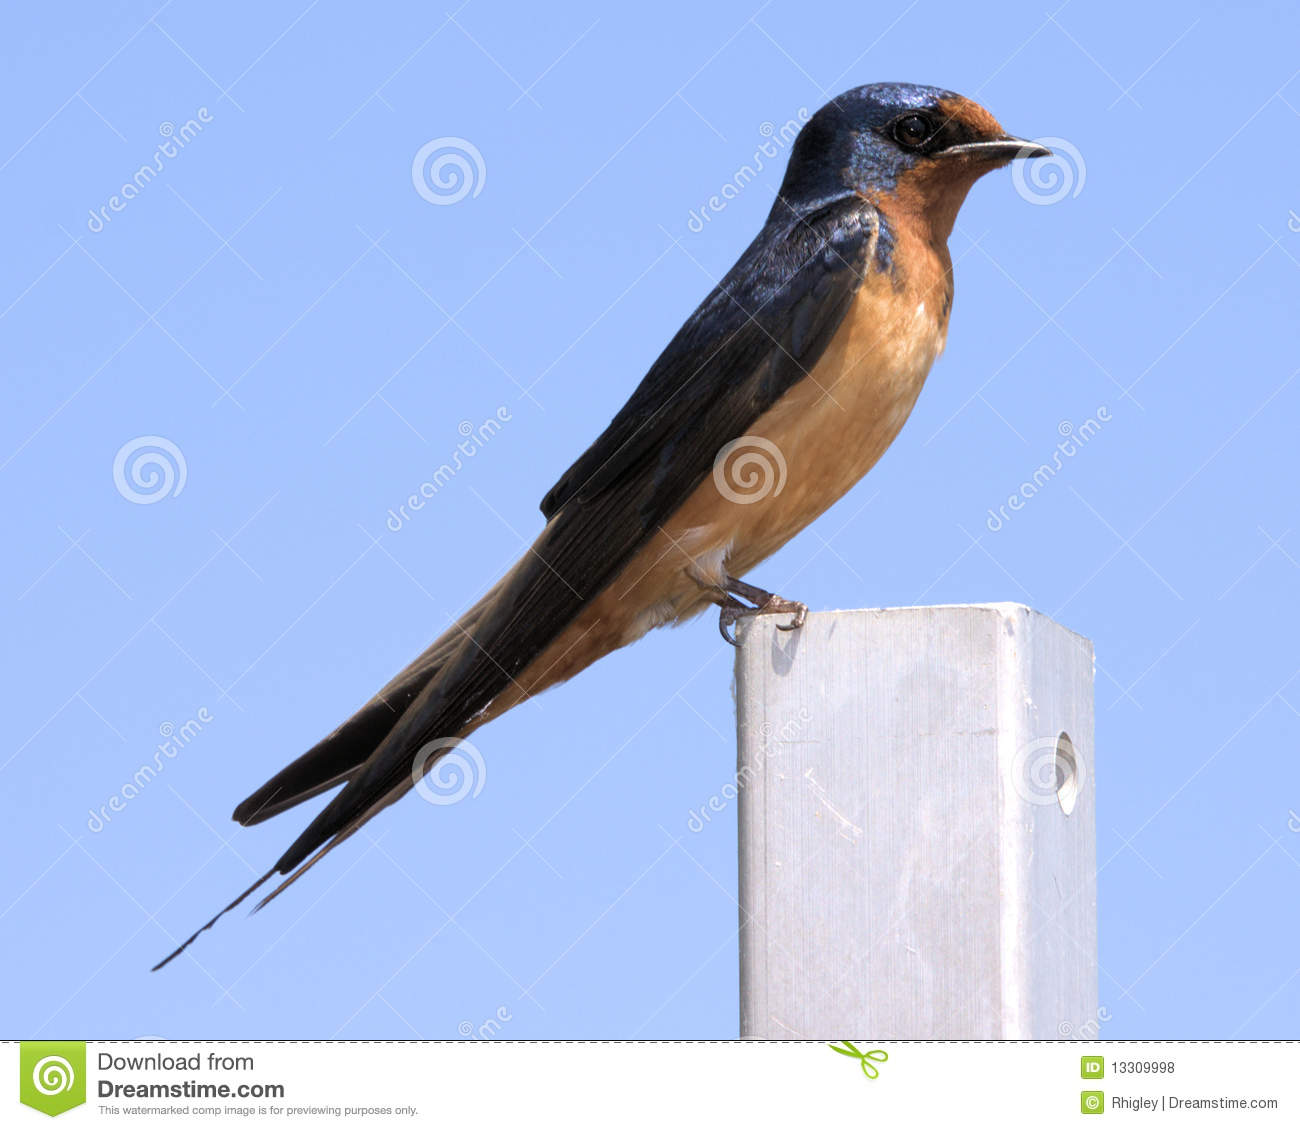 Purple martin royalty free stock photos image 13309998 for Martins fish house